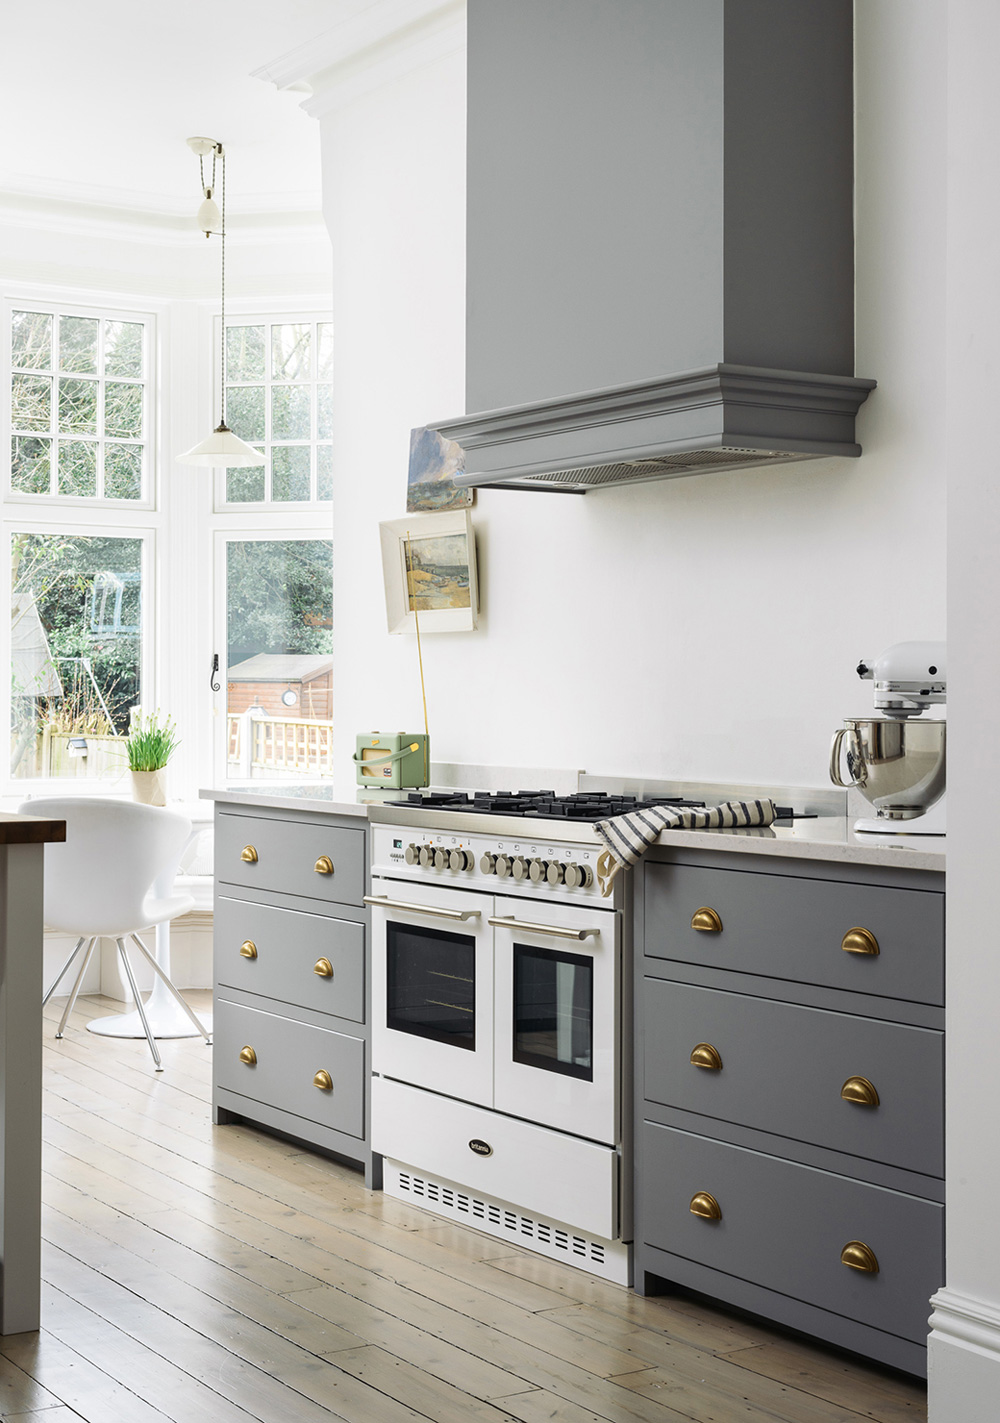 How to achieve a modern country kitchen